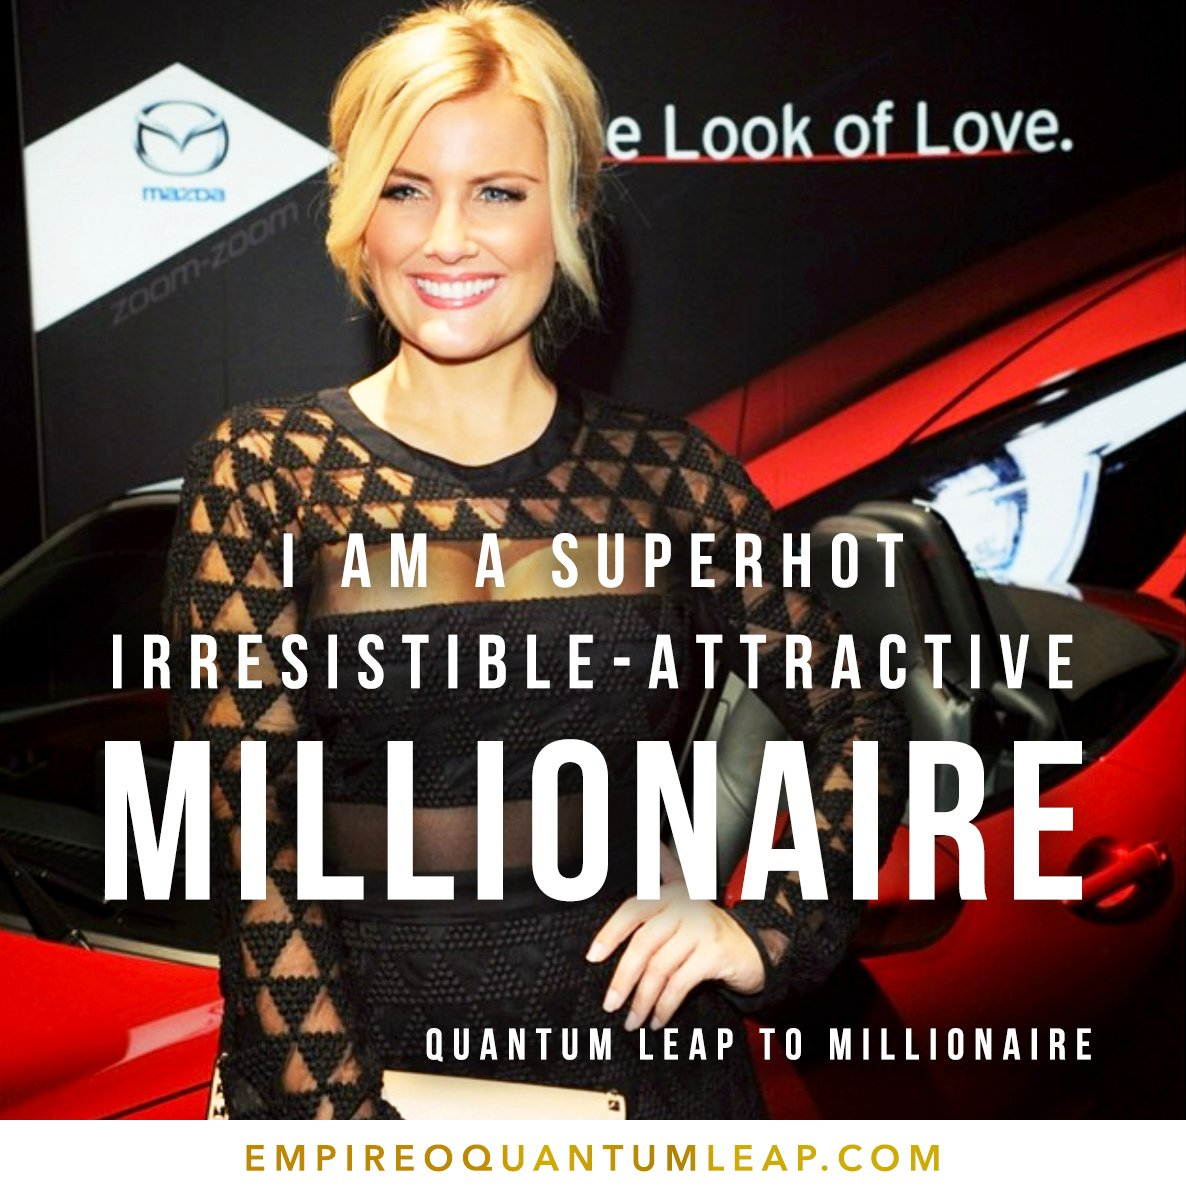 """I am a SUPERHOT ATTRACTIVE MILLIONAIRE. 😎🏎️🔝👊🔥😍🏁  """"QUANTUM LEAP TO MILLIONAIRE""""💰💎 ▶️ I want to know more about the program https://t.co/zfXarpi339 https://t.co/WrHVPEfBB9"""